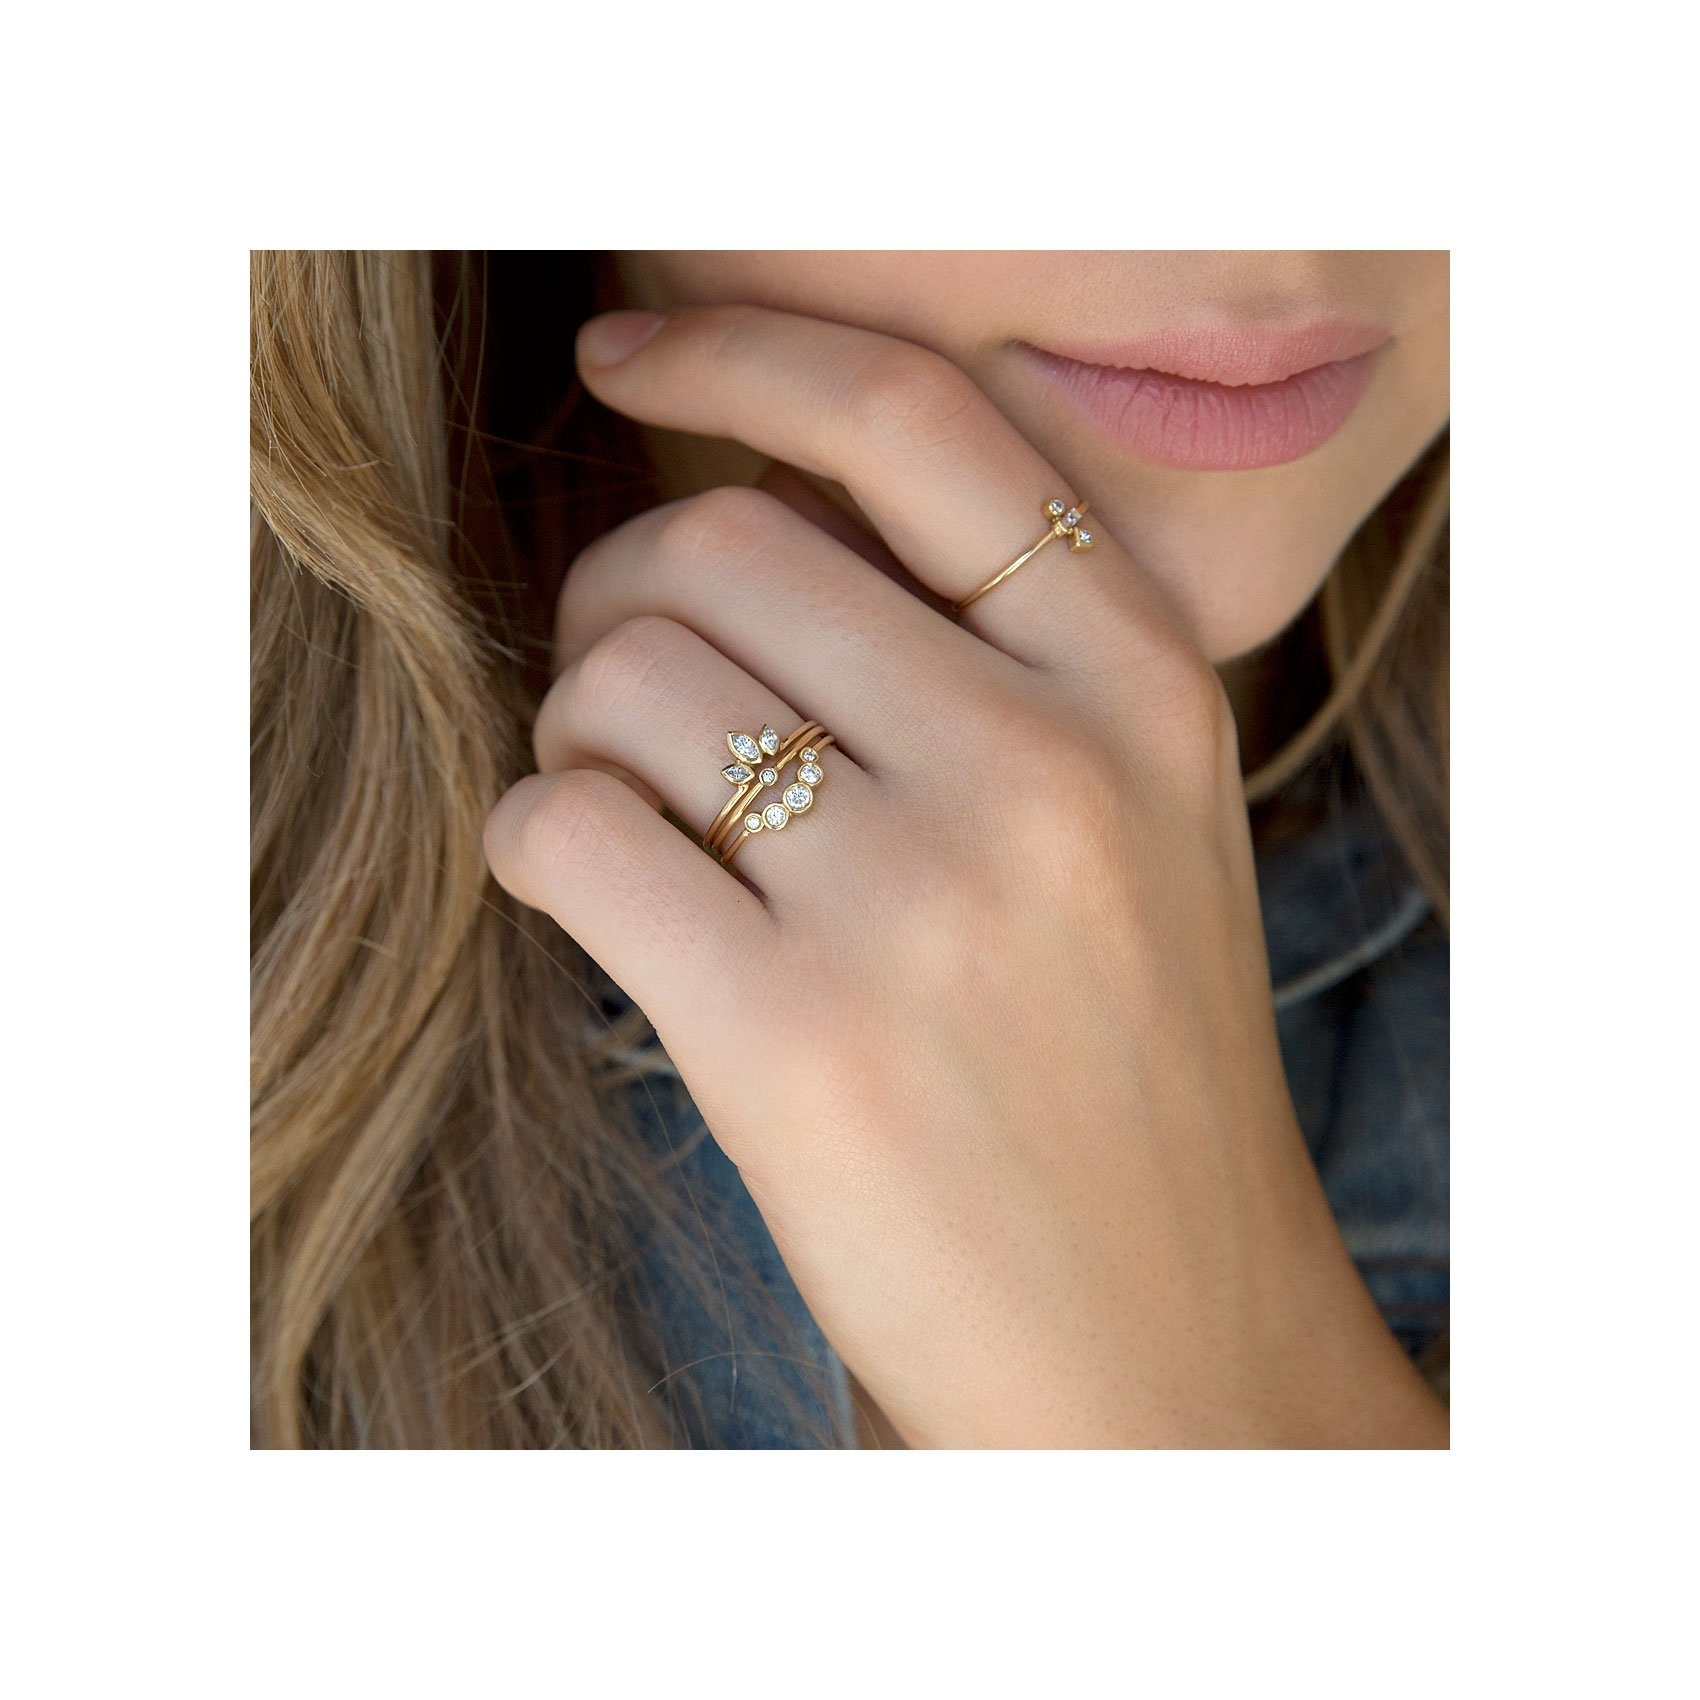 Zoe Chicco Marquis Diamond Crown Stackable Yellow Gold Ring on Model